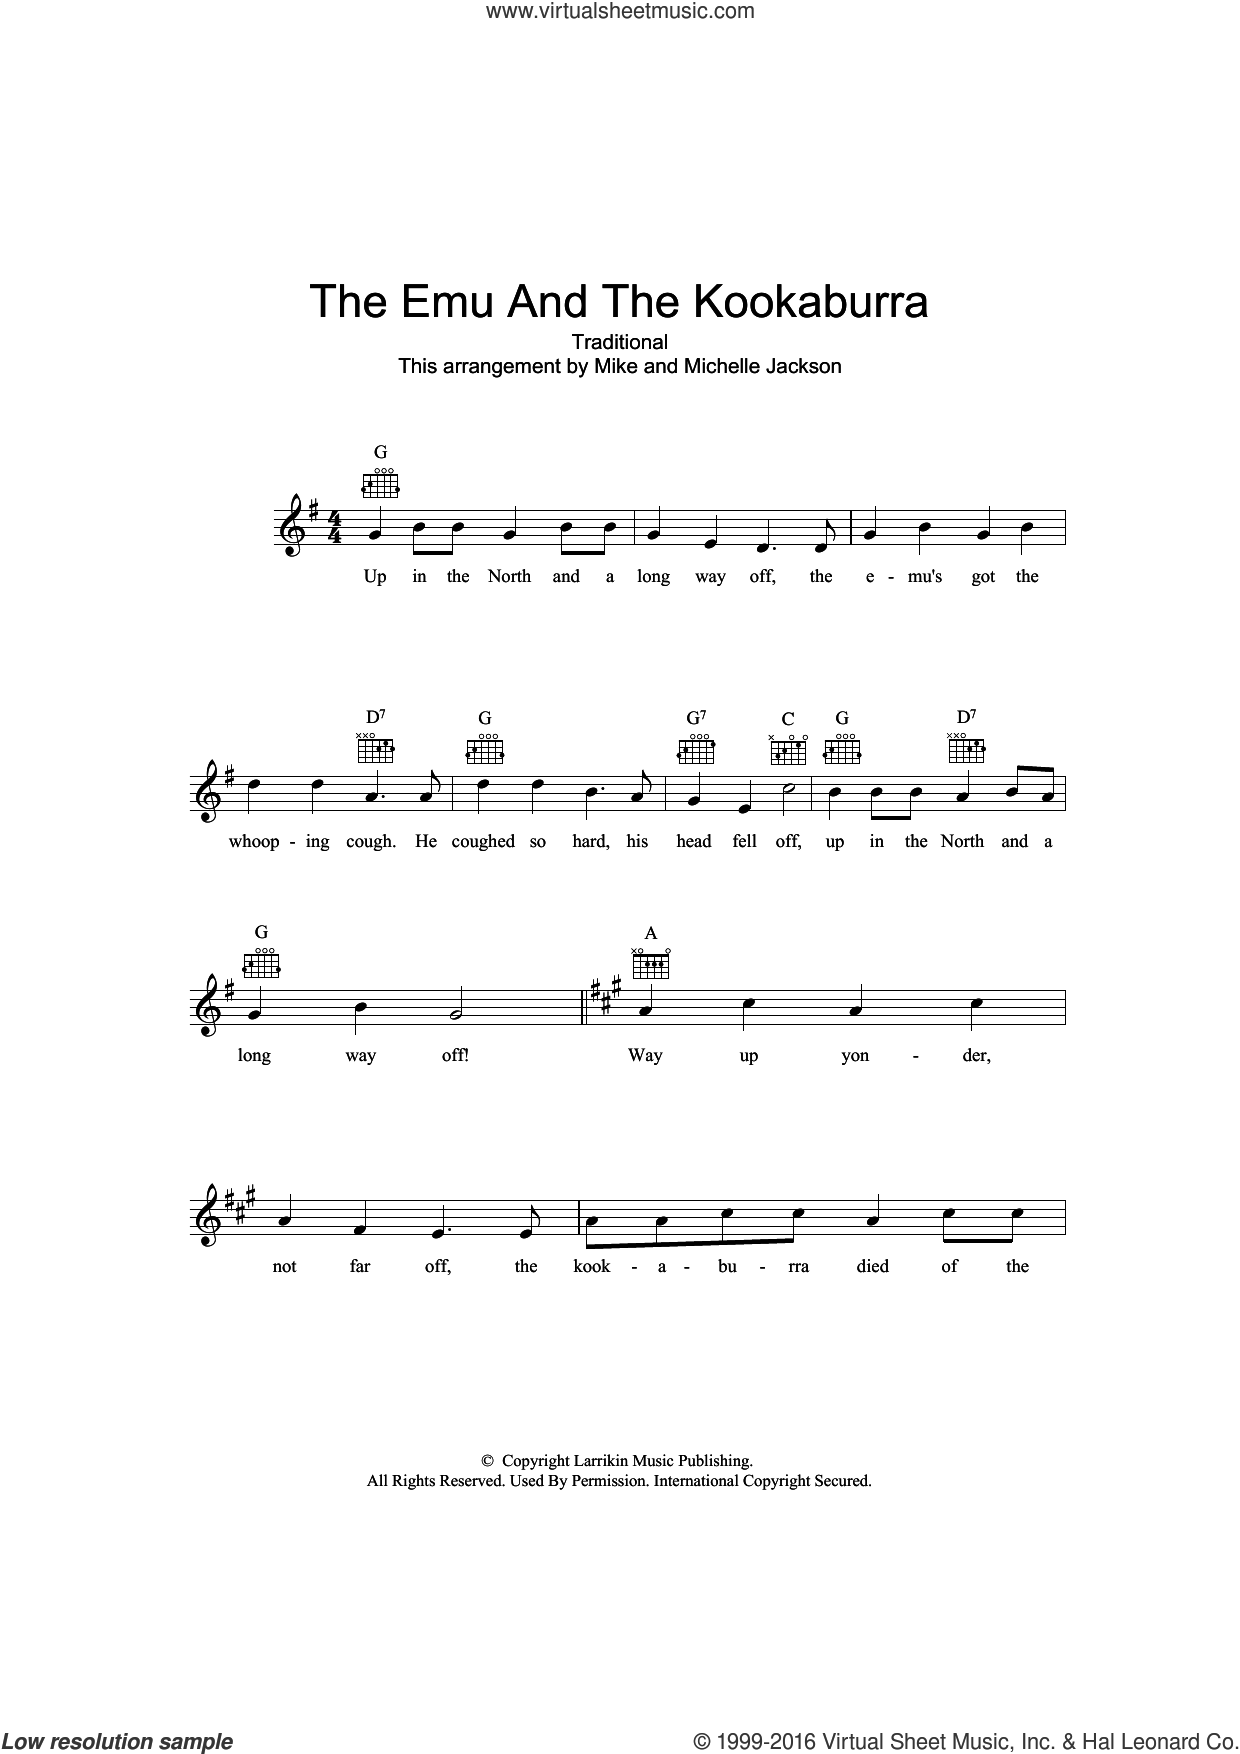 The Emu And The Kookaburra sheet music for voice and other instruments (fake book), intermediate